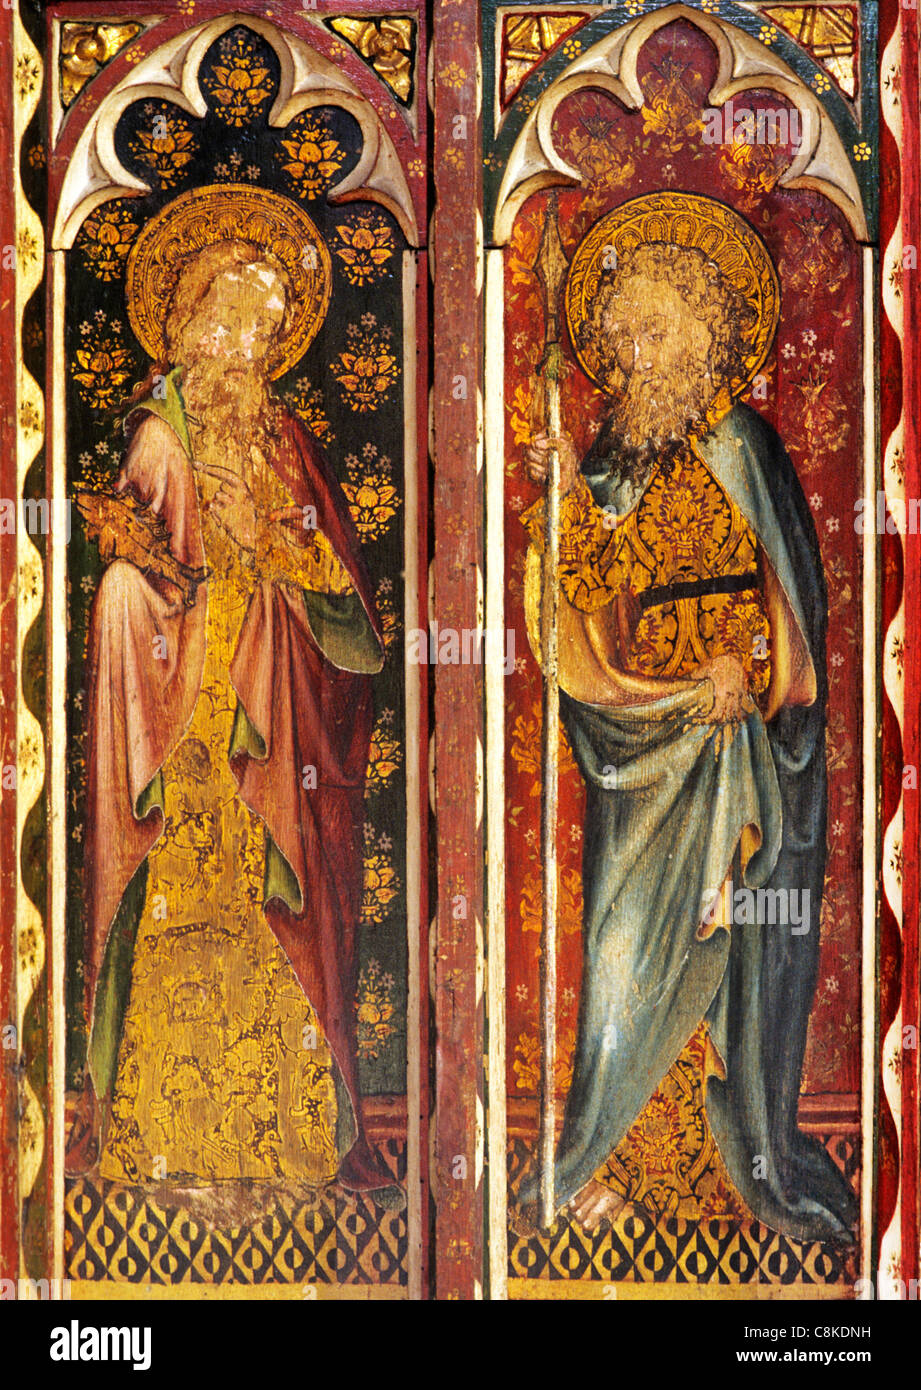 Ranworth, Norfolk, rood screen, St. Simon with fish, St. Thomas with Spear, male saint saints English medieval screens - Stock Image